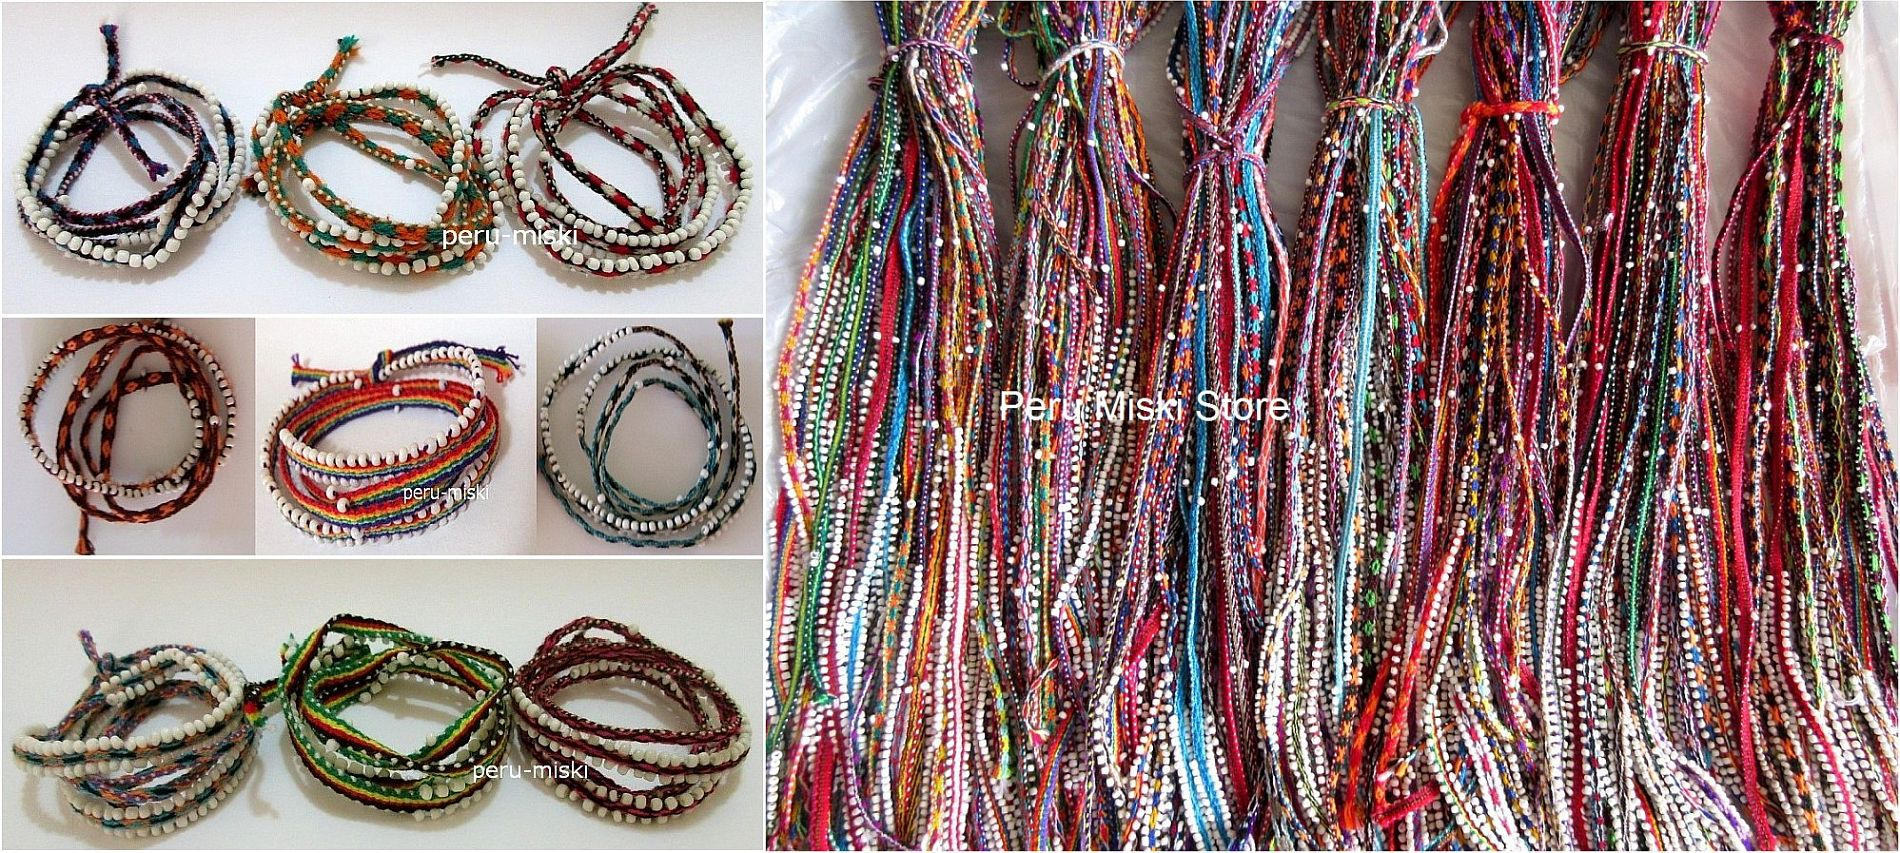 100 Wrap Friendship Bracelets, Watana, from Cusco, Cuzco